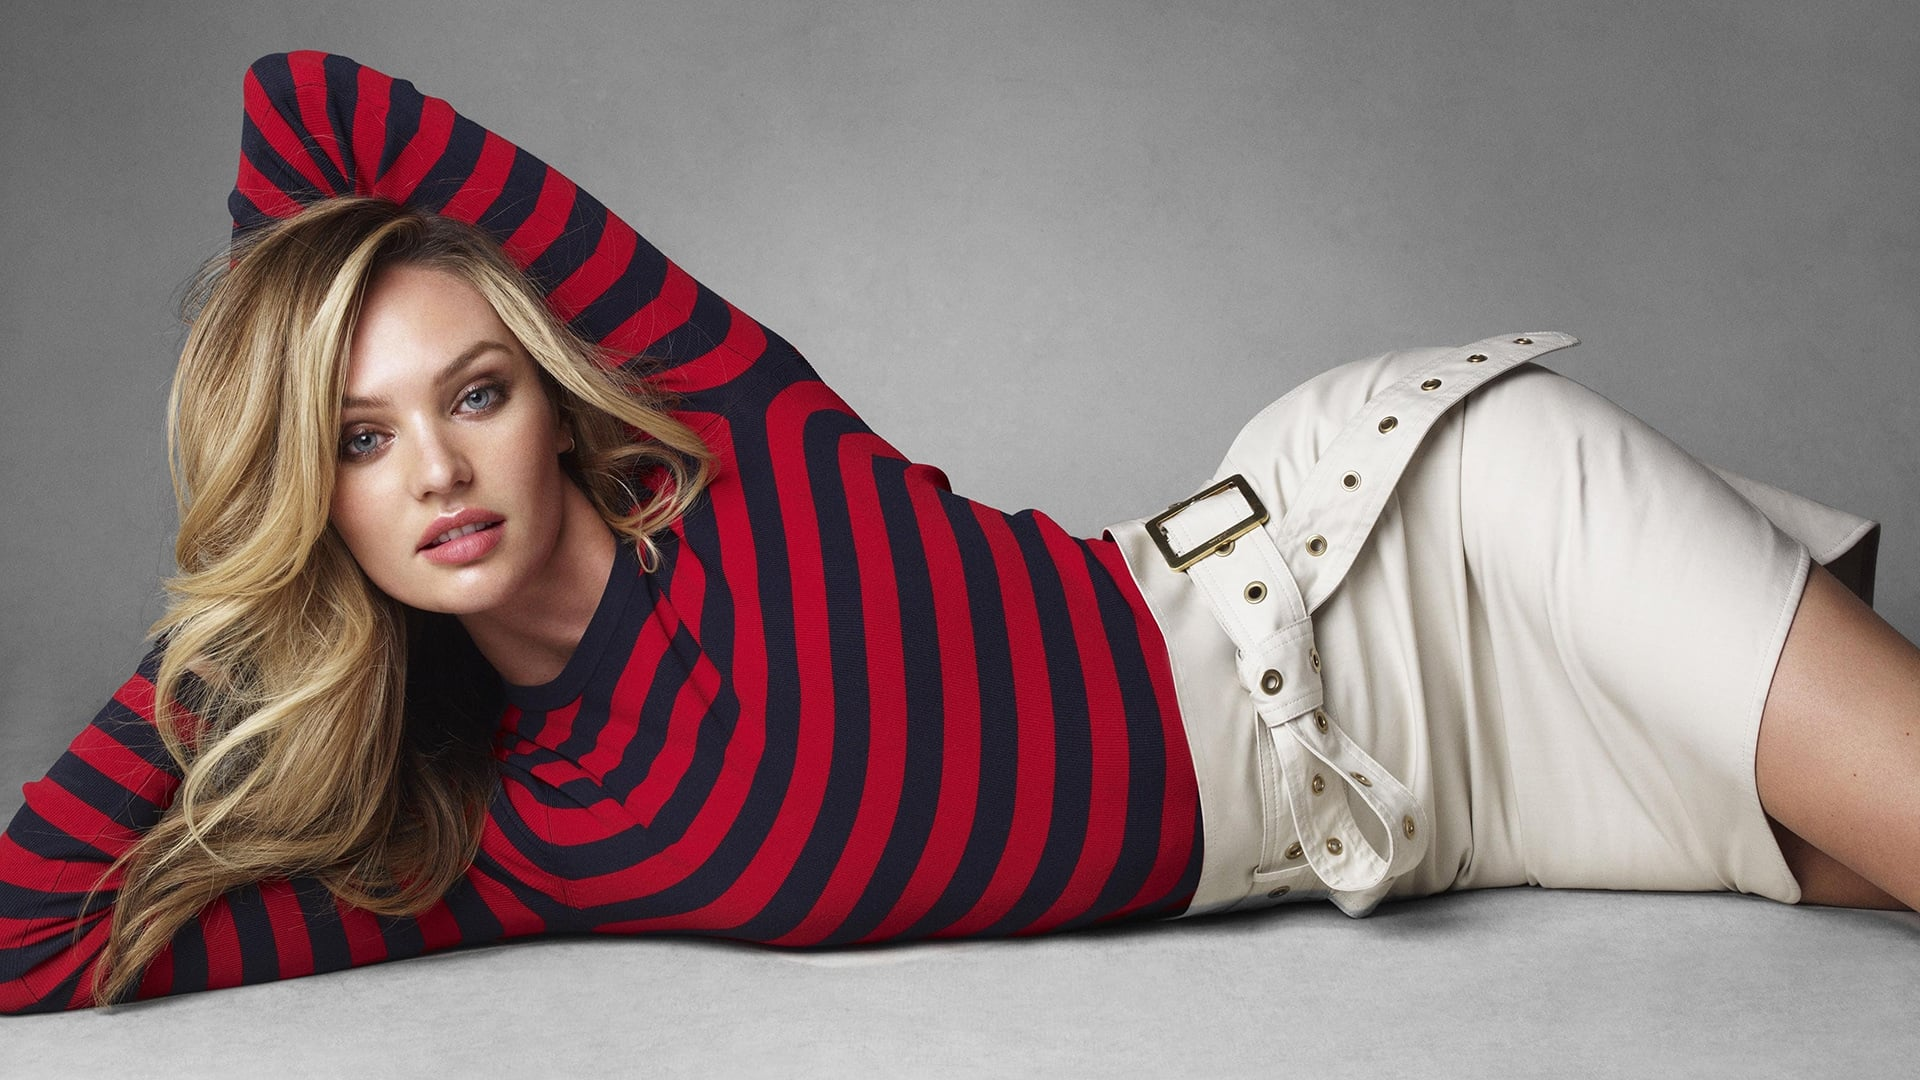 Candice swanepoel desktop wallpaper